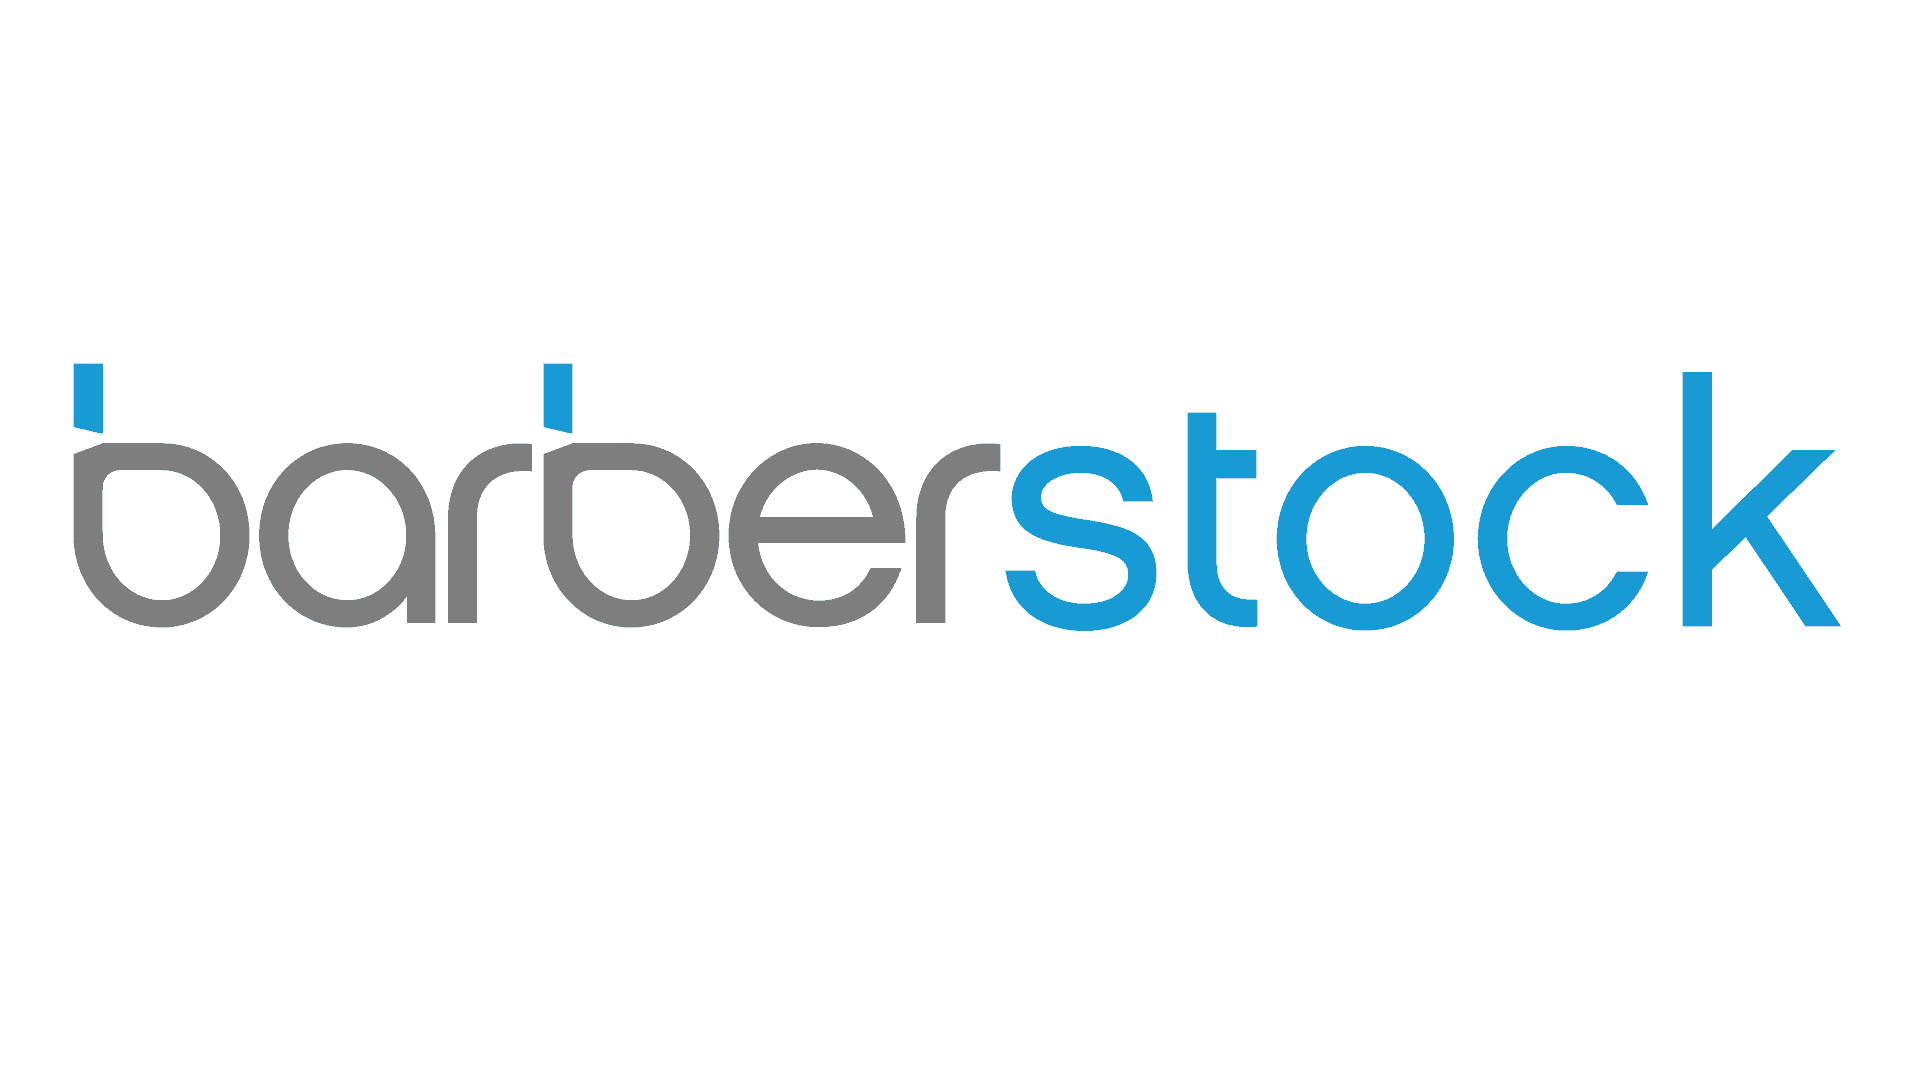 Barberstock Systems Inc.